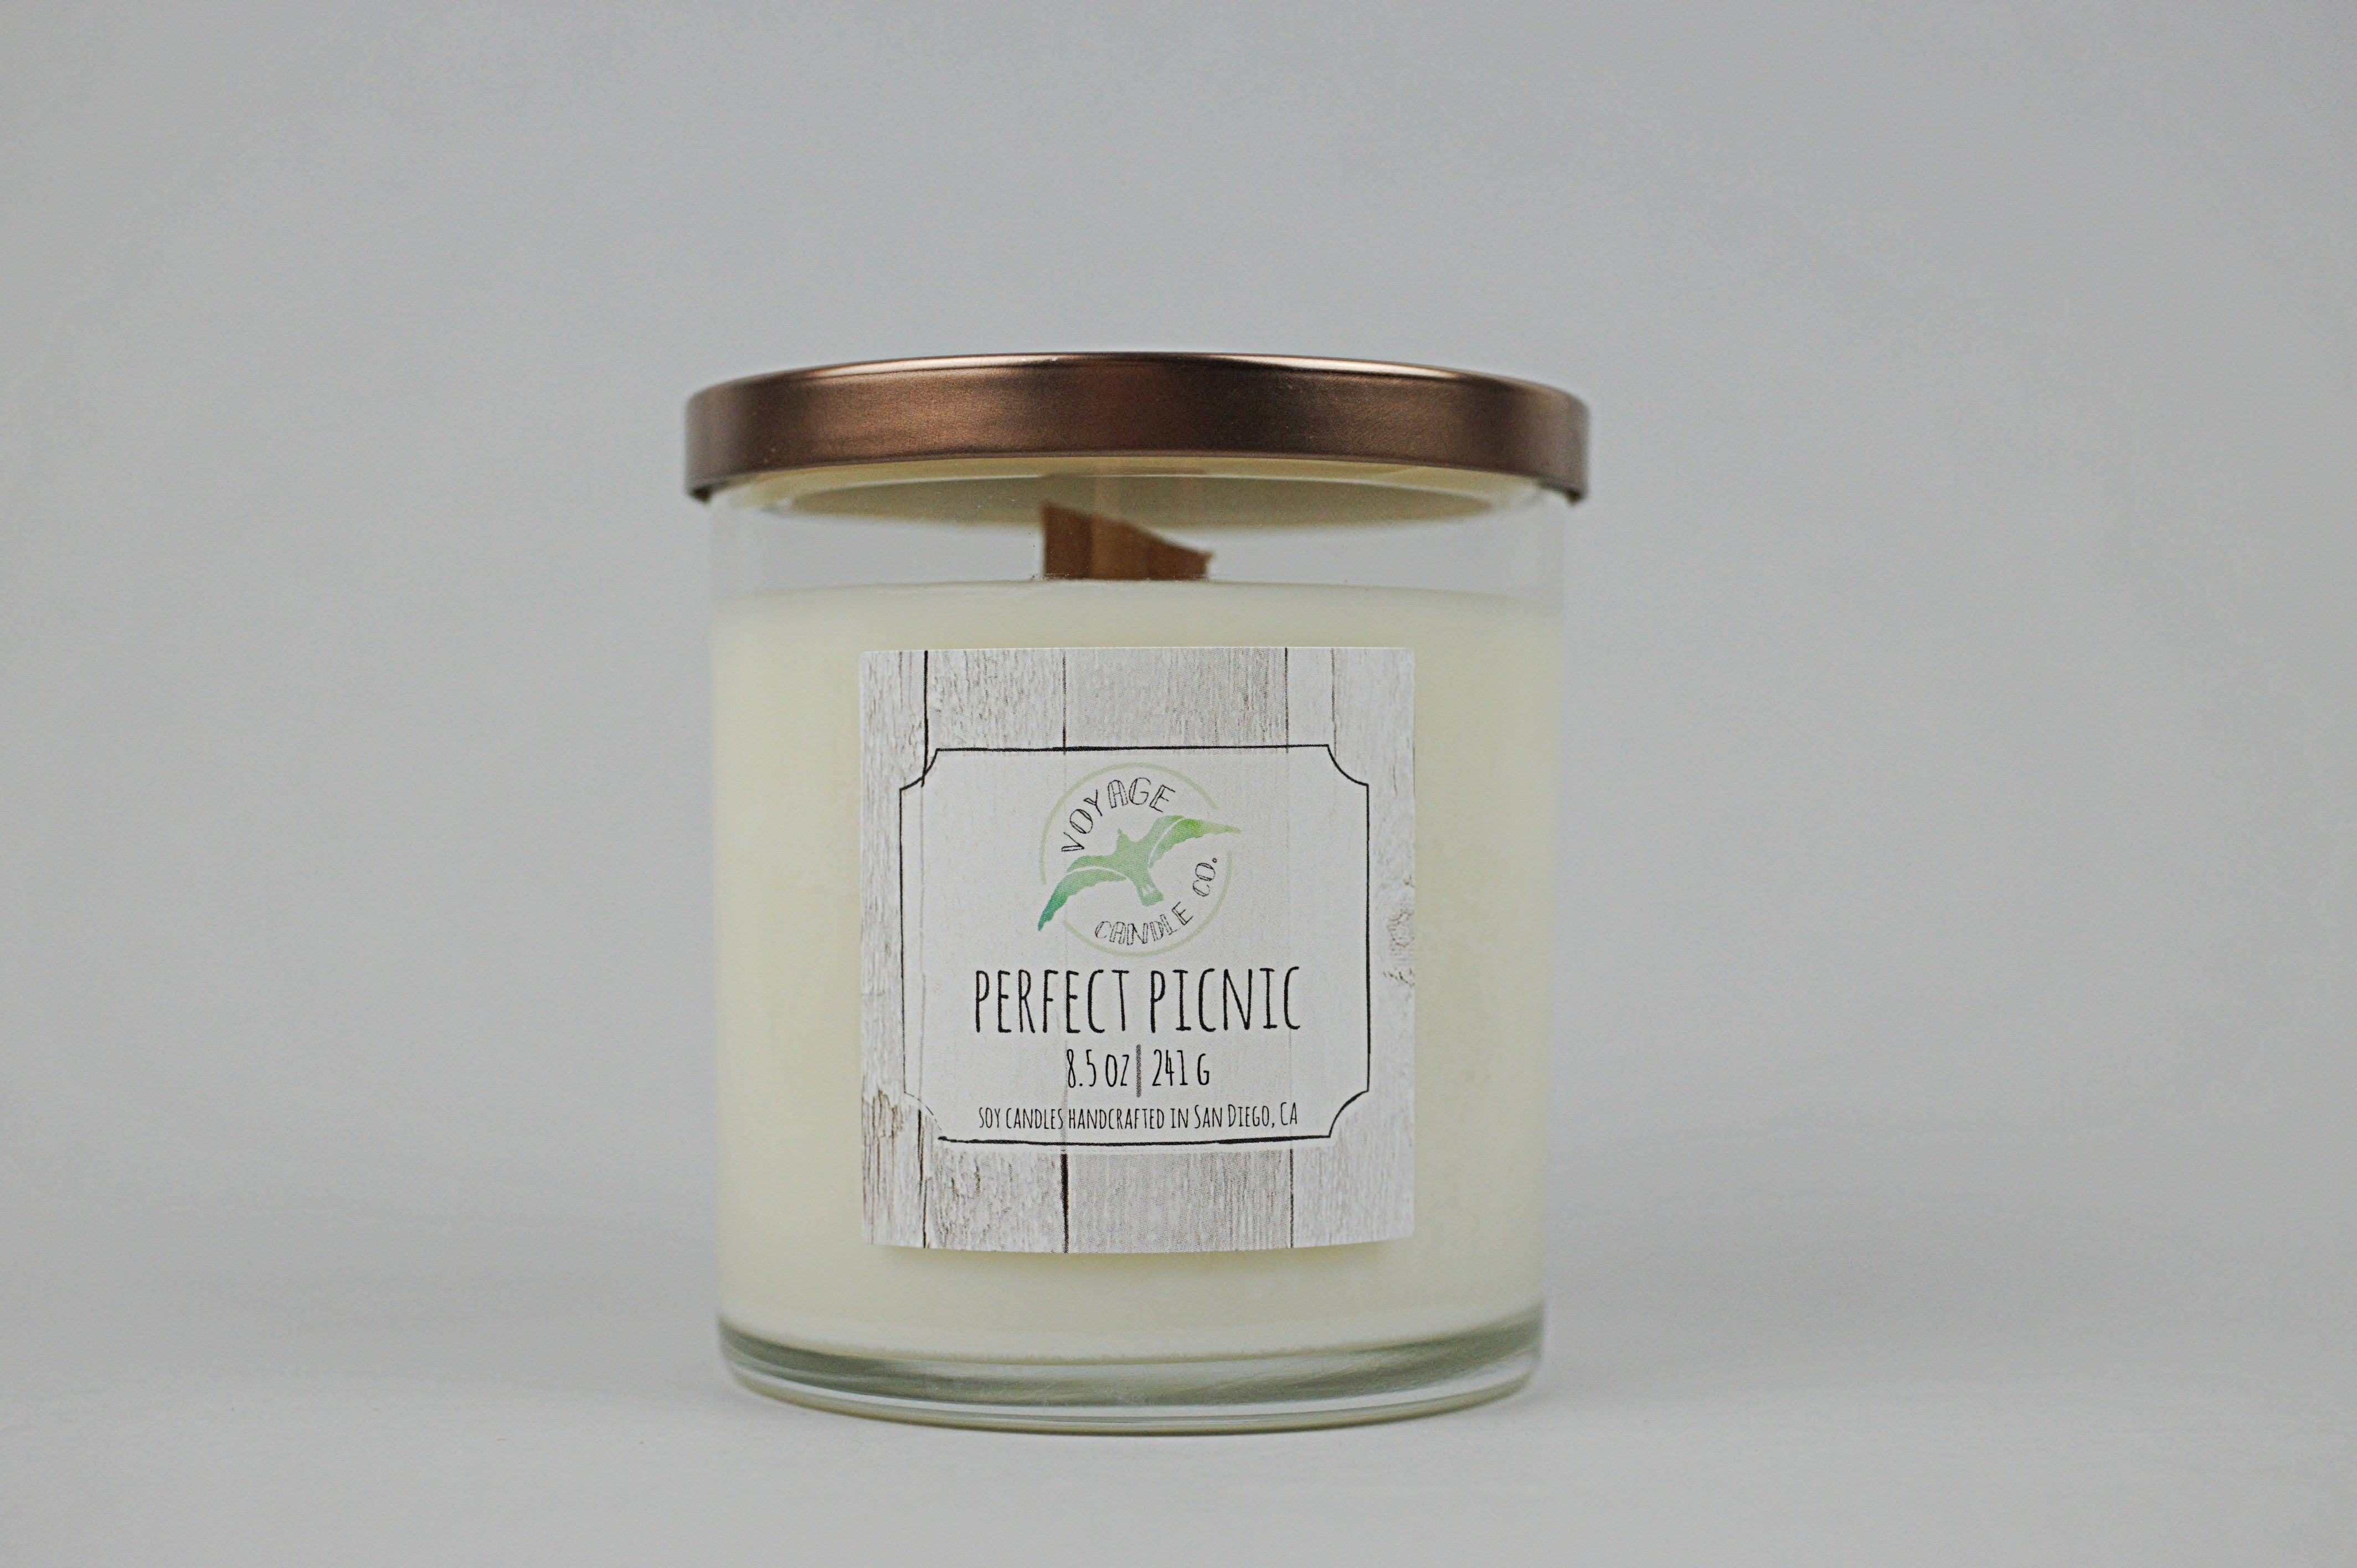 Perfect Picnic - Wood Wick - Voyage Candle Co.